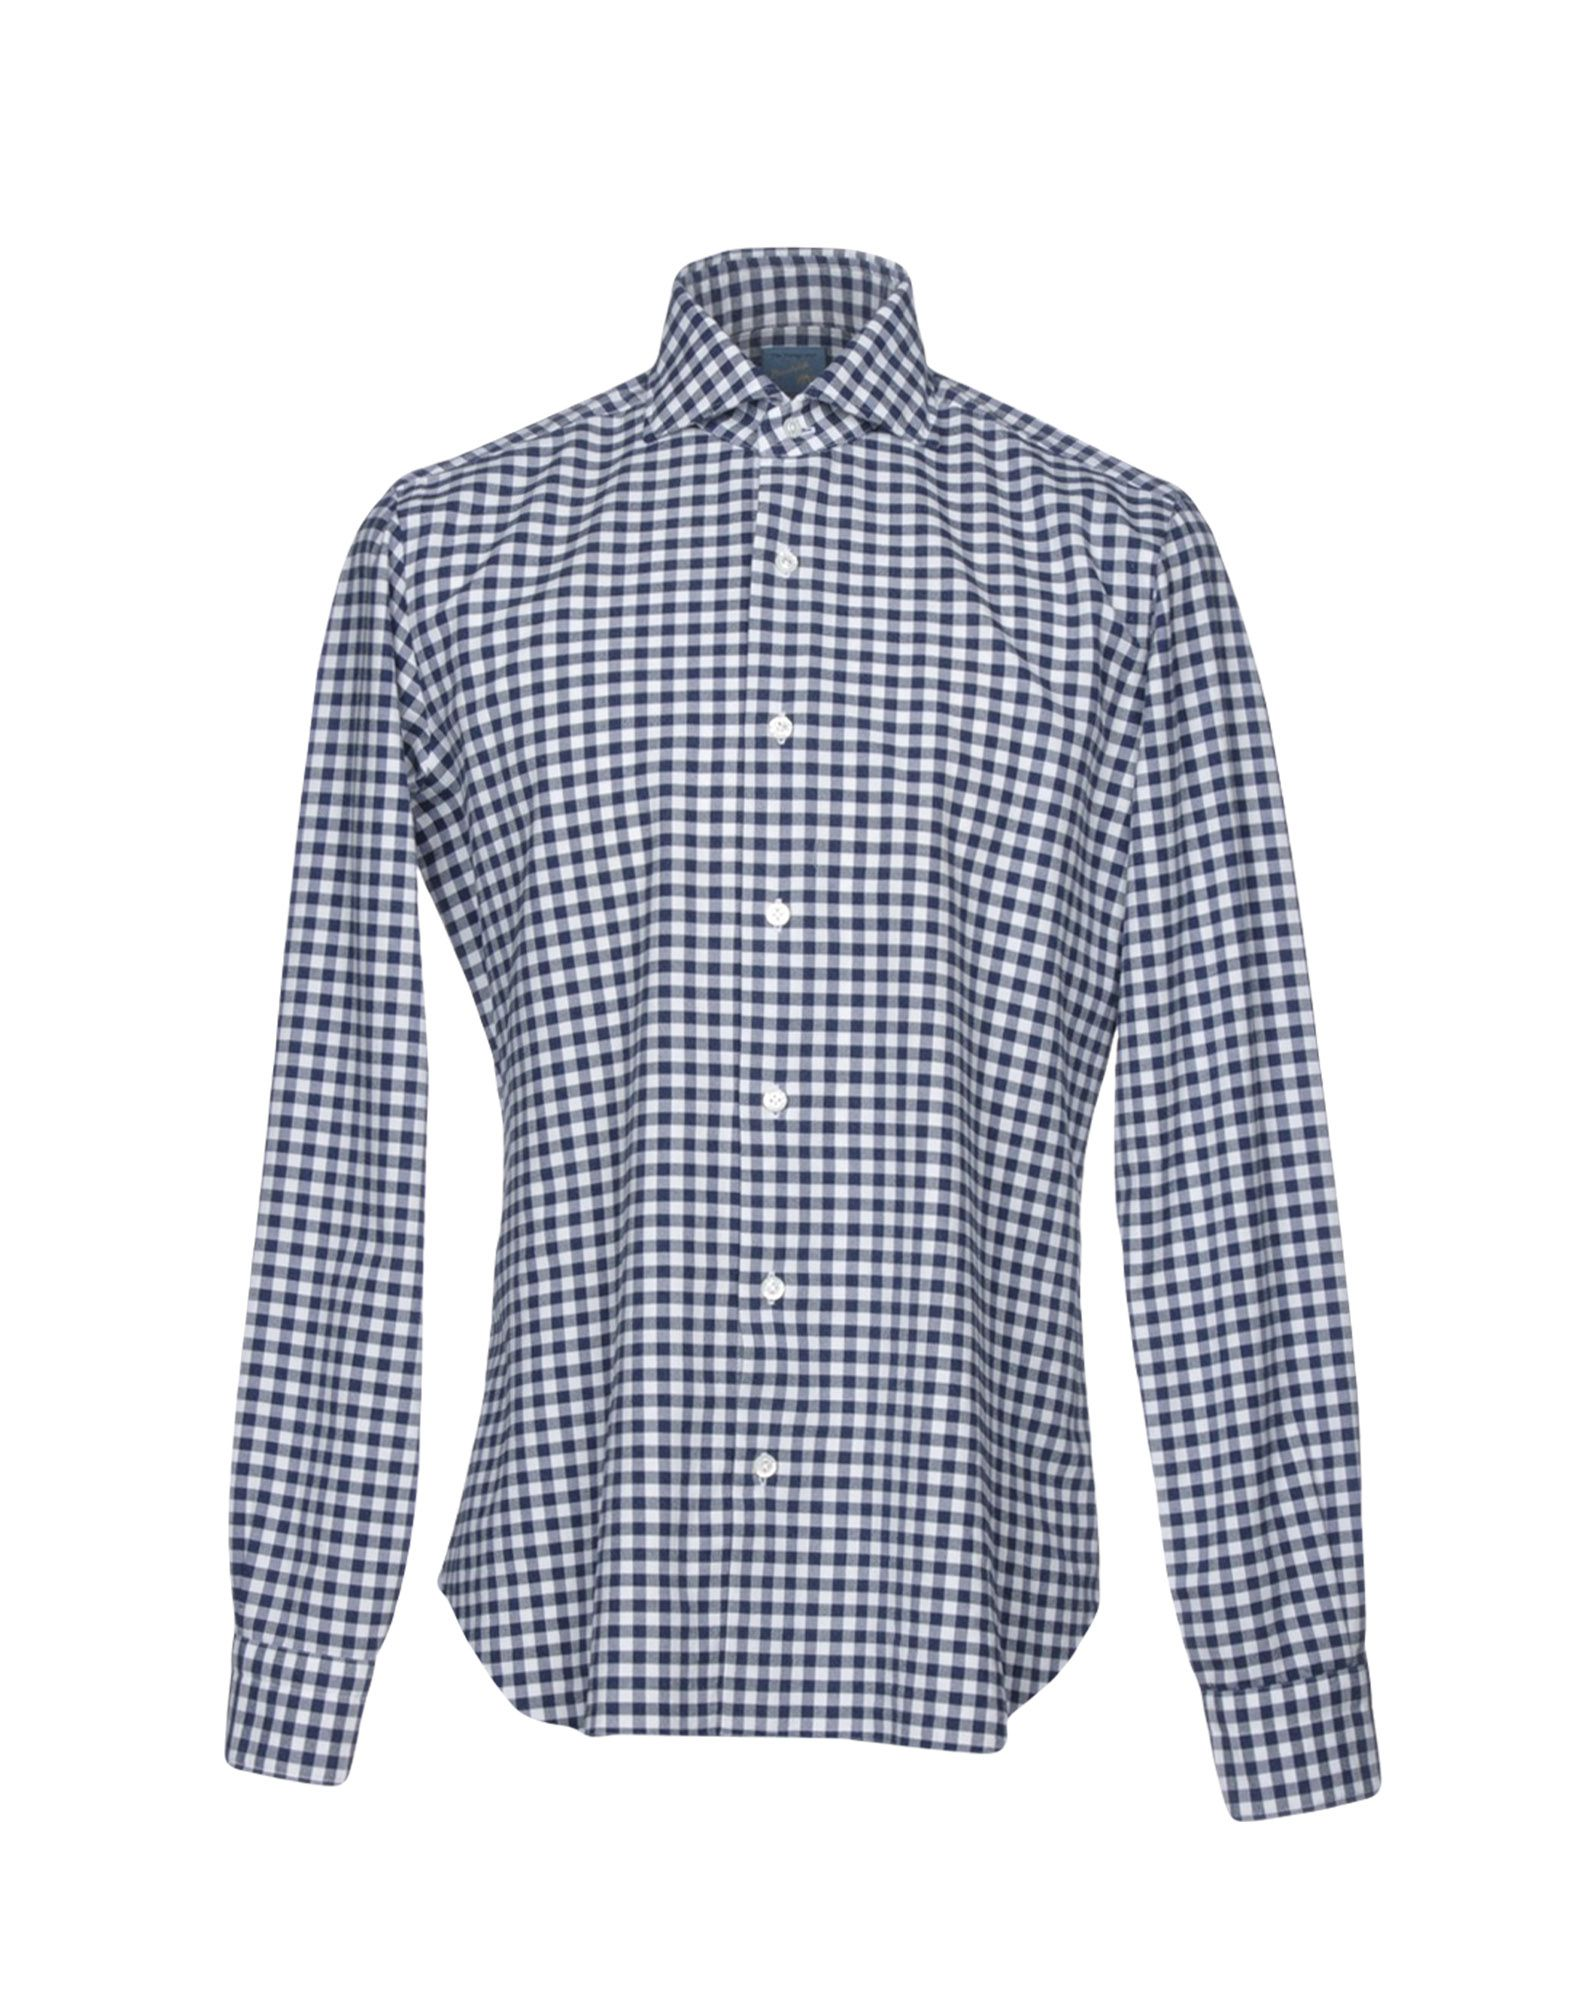 SOLD OUT         Camicia A Quadri Barba Napoli Uomo - Acquista online su